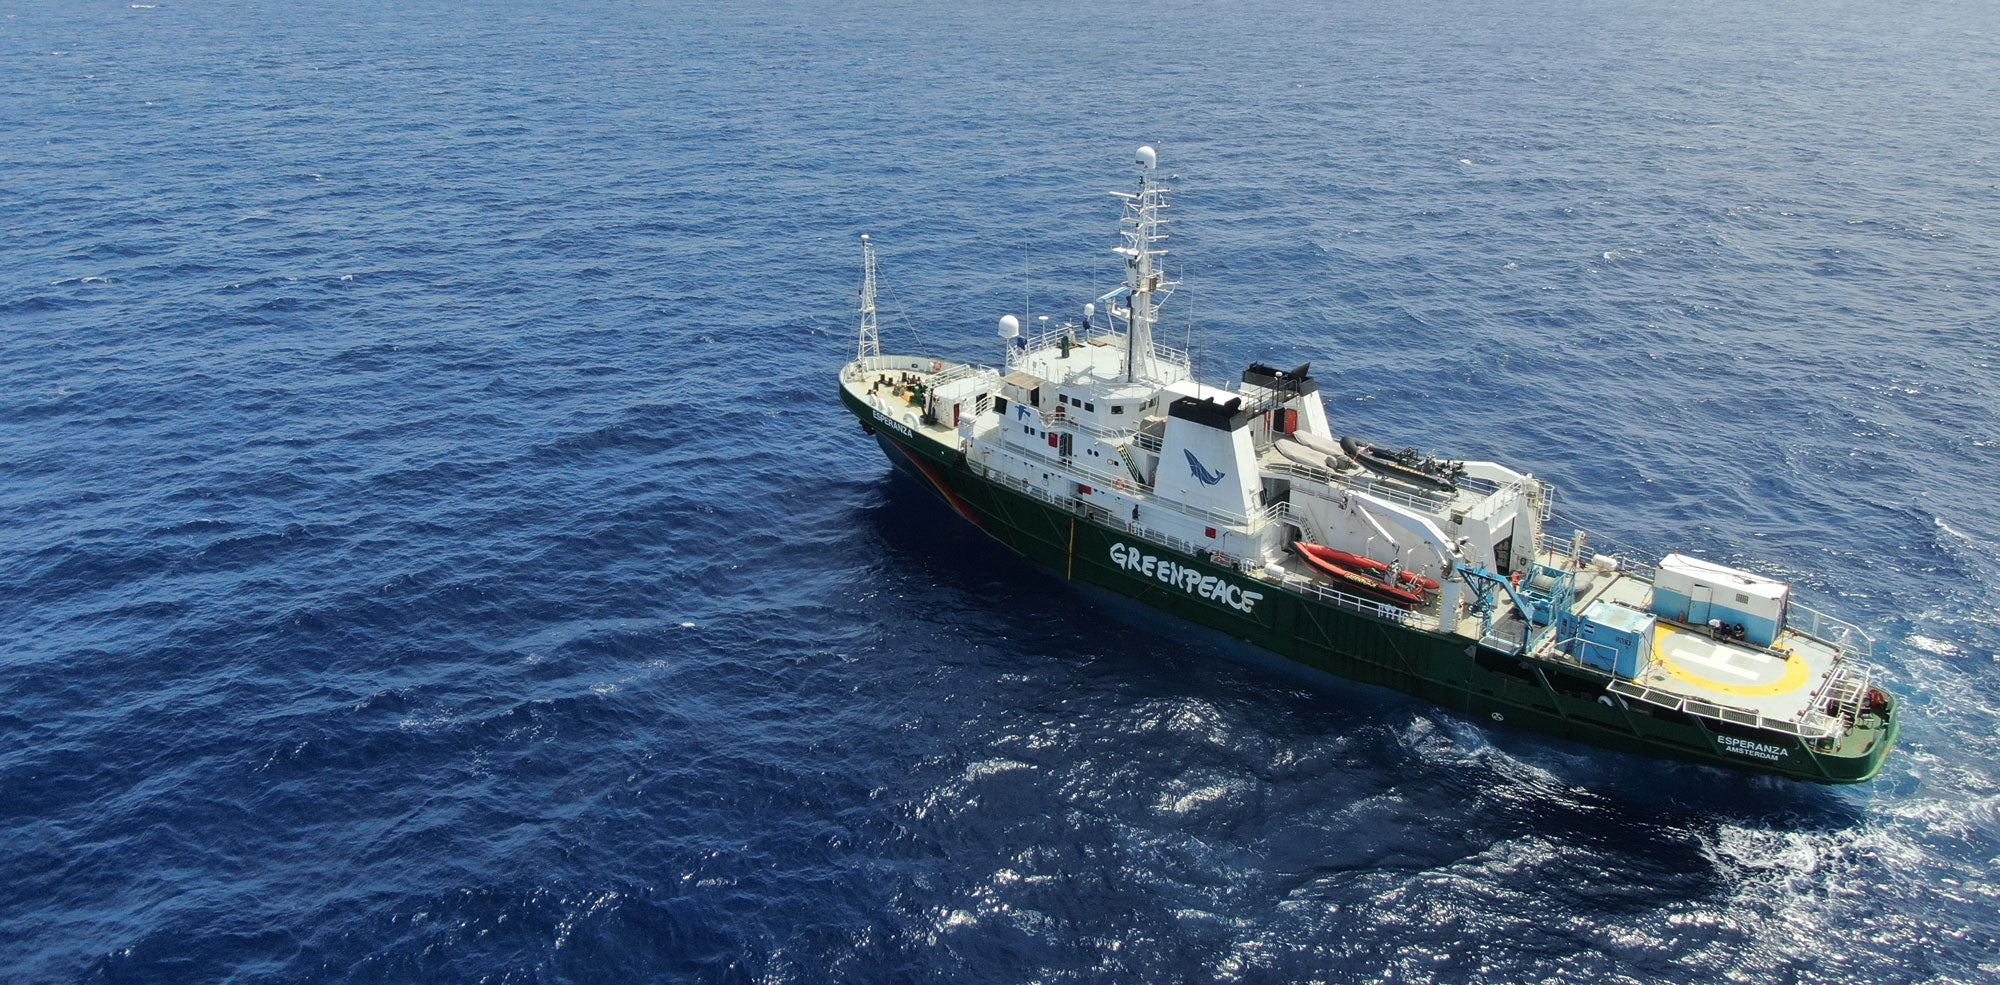 Jade Sellick - Greenpeace ship MY Esperanza captured from a drone